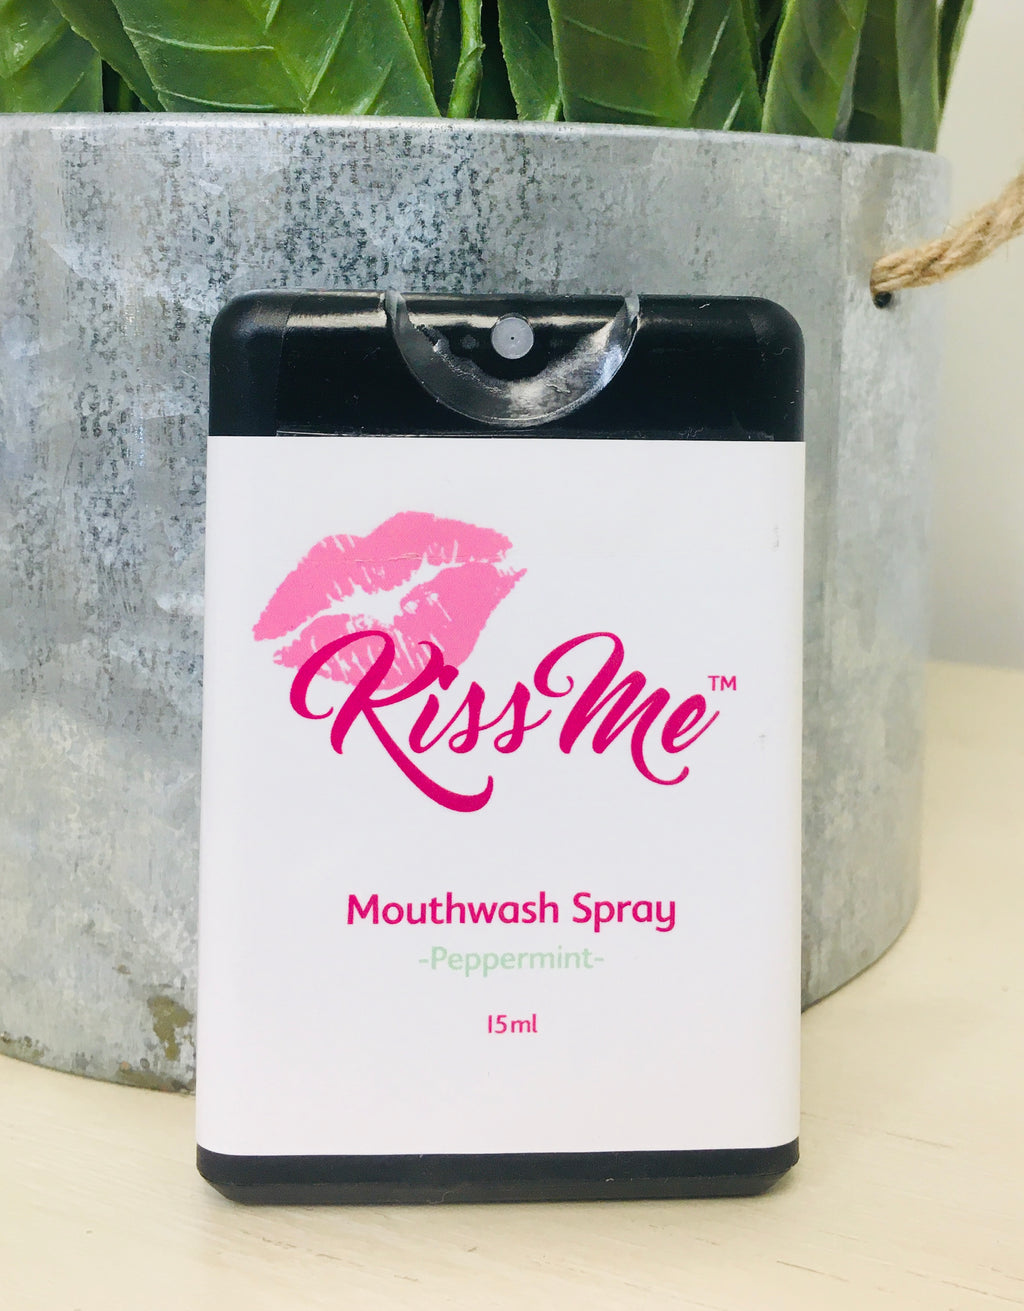 Kiss Me - Mouthwash Spray